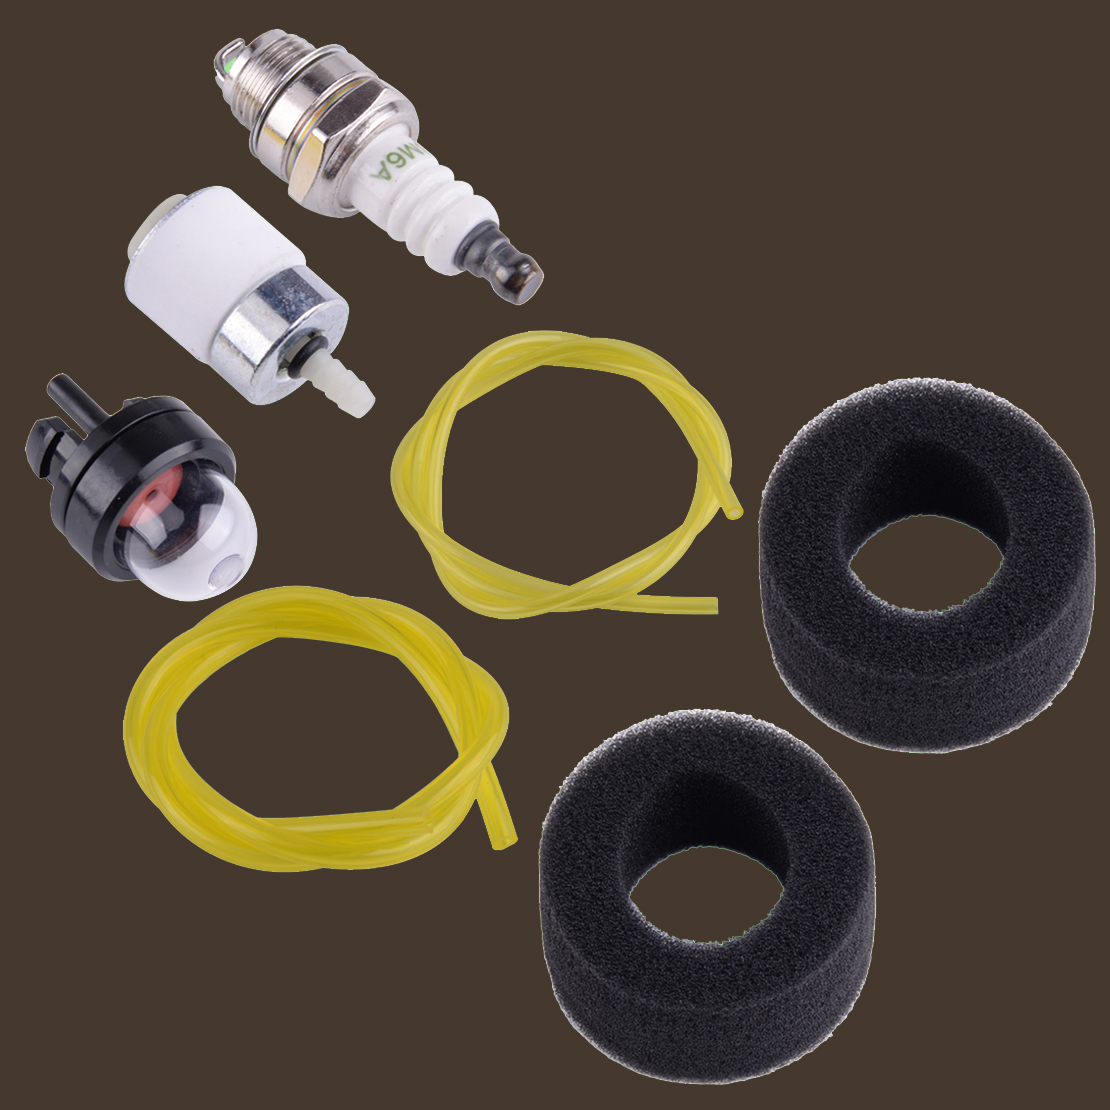 Air Filter Fuel Line Kit 682039 Fit Bolens Bl410 Bl100 Ryobi 410r Tiller Trimmer